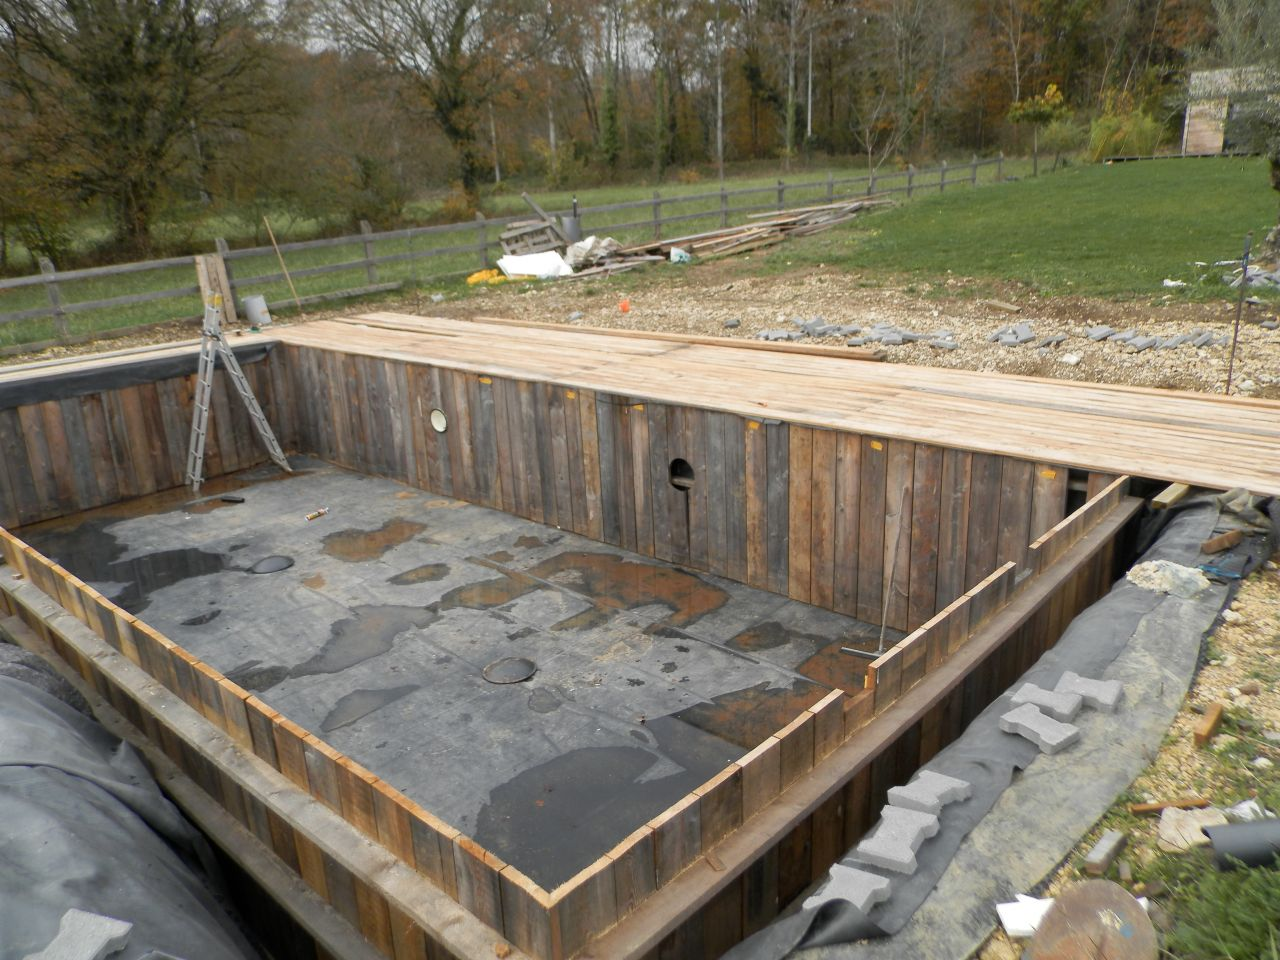 Piscine naturelle poele a pellets garat charente for Autoconstruction piscine naturelle